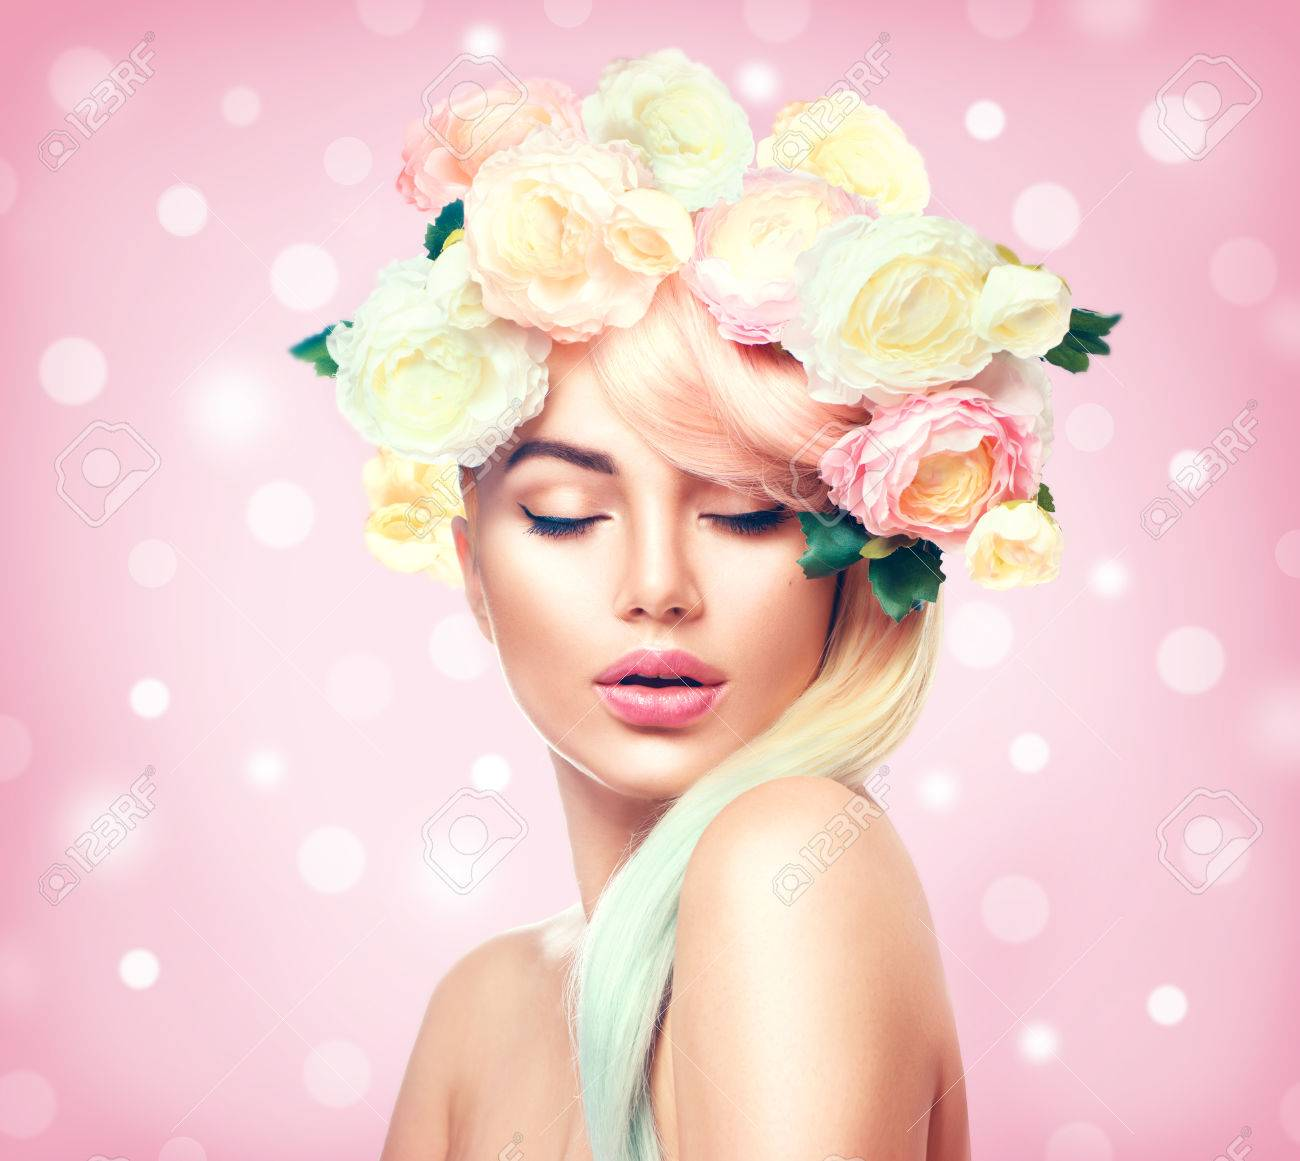 Beauty summer model girl with colorful flowers wreath. Flowers hair style Banque d'images - 73661786